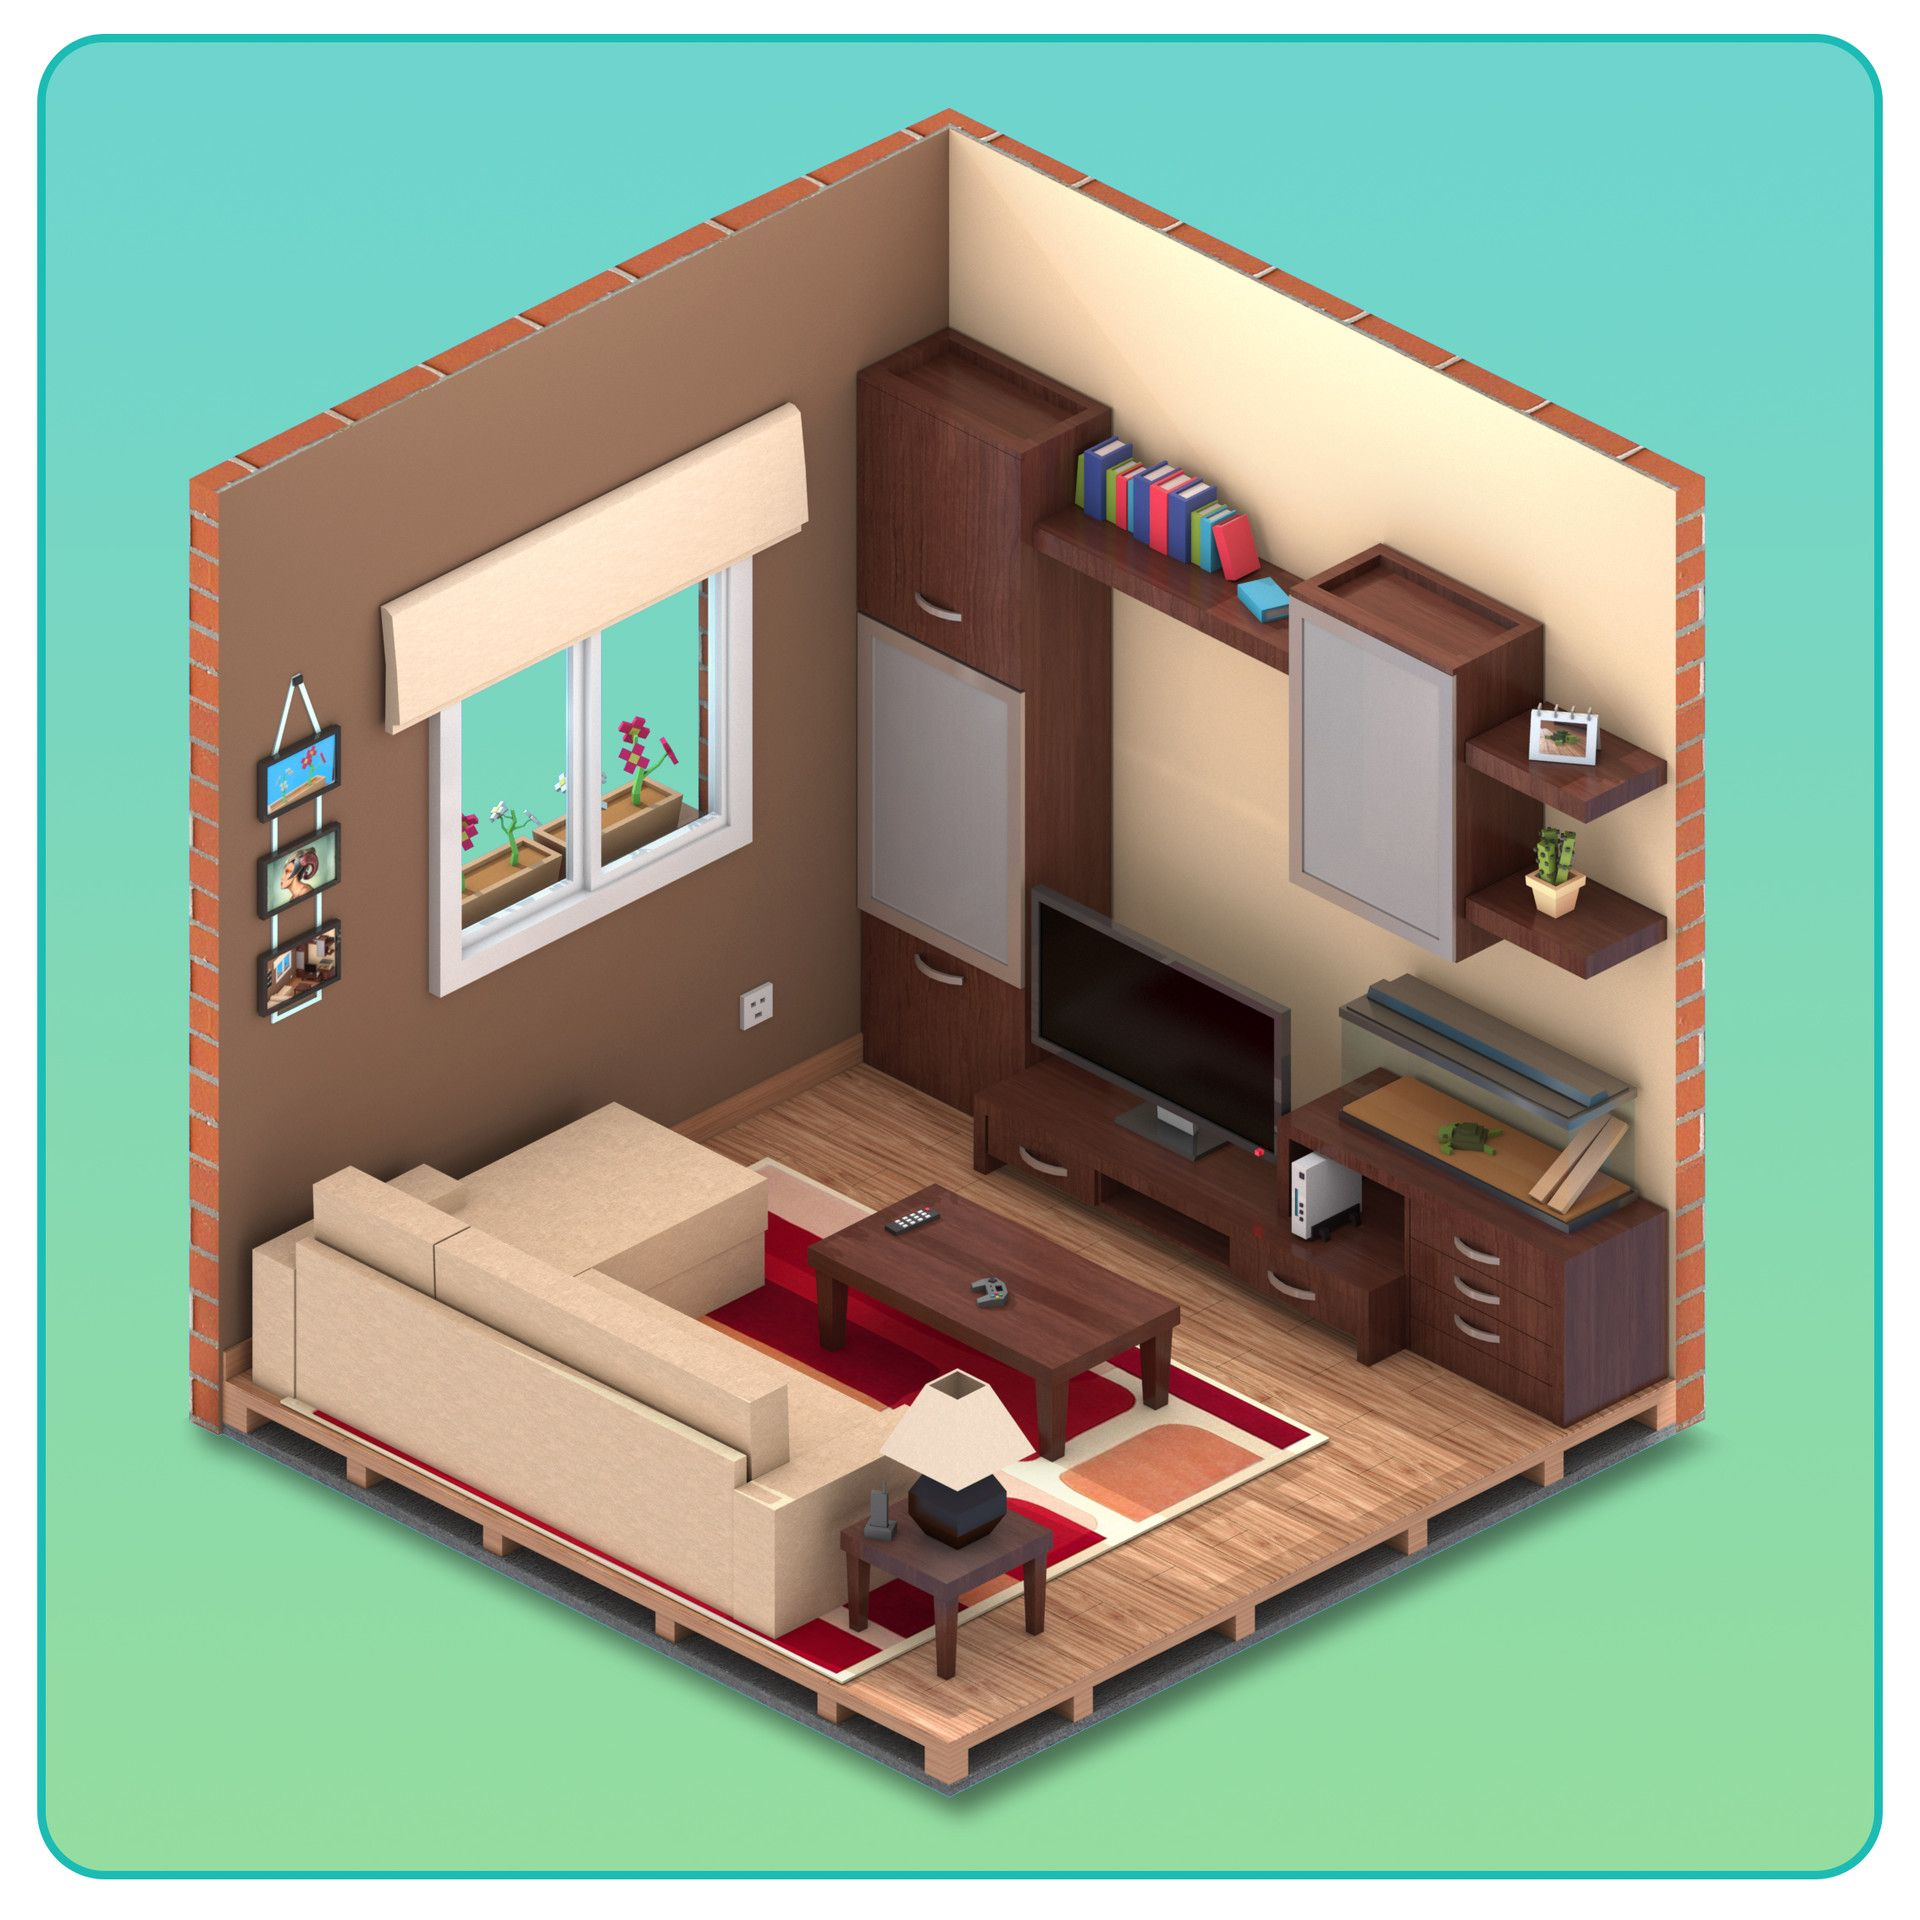 Virtual 3d Home Design Game: Isometric Living Room For Game. Maked In 3dmax And